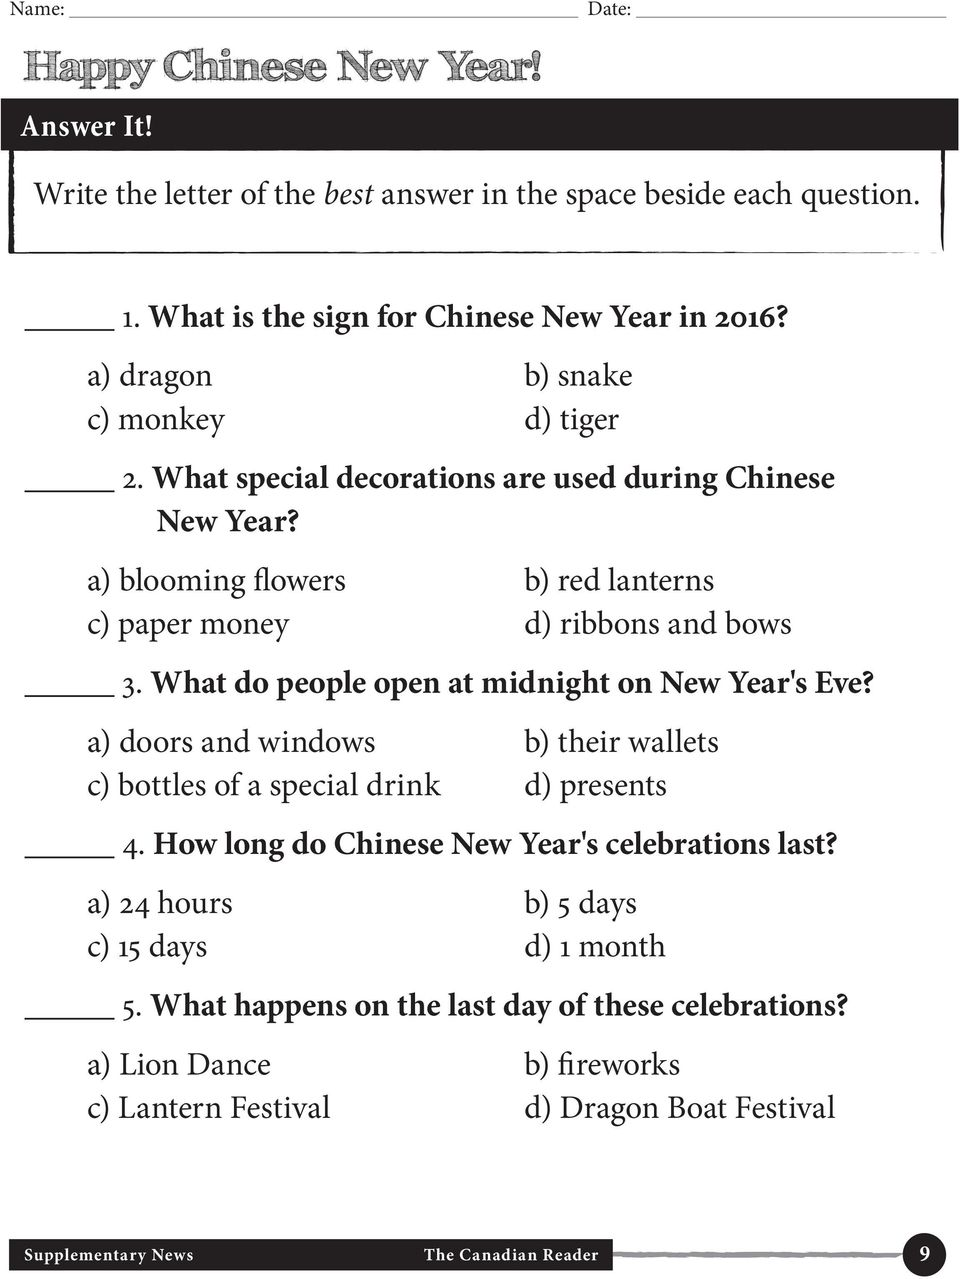 What do people open at midnight on New Year's Eve? a) doors and windows b) their wallets c) bottles of a special drink d) presents 4. How long do Chinese New Year's celebrations last?